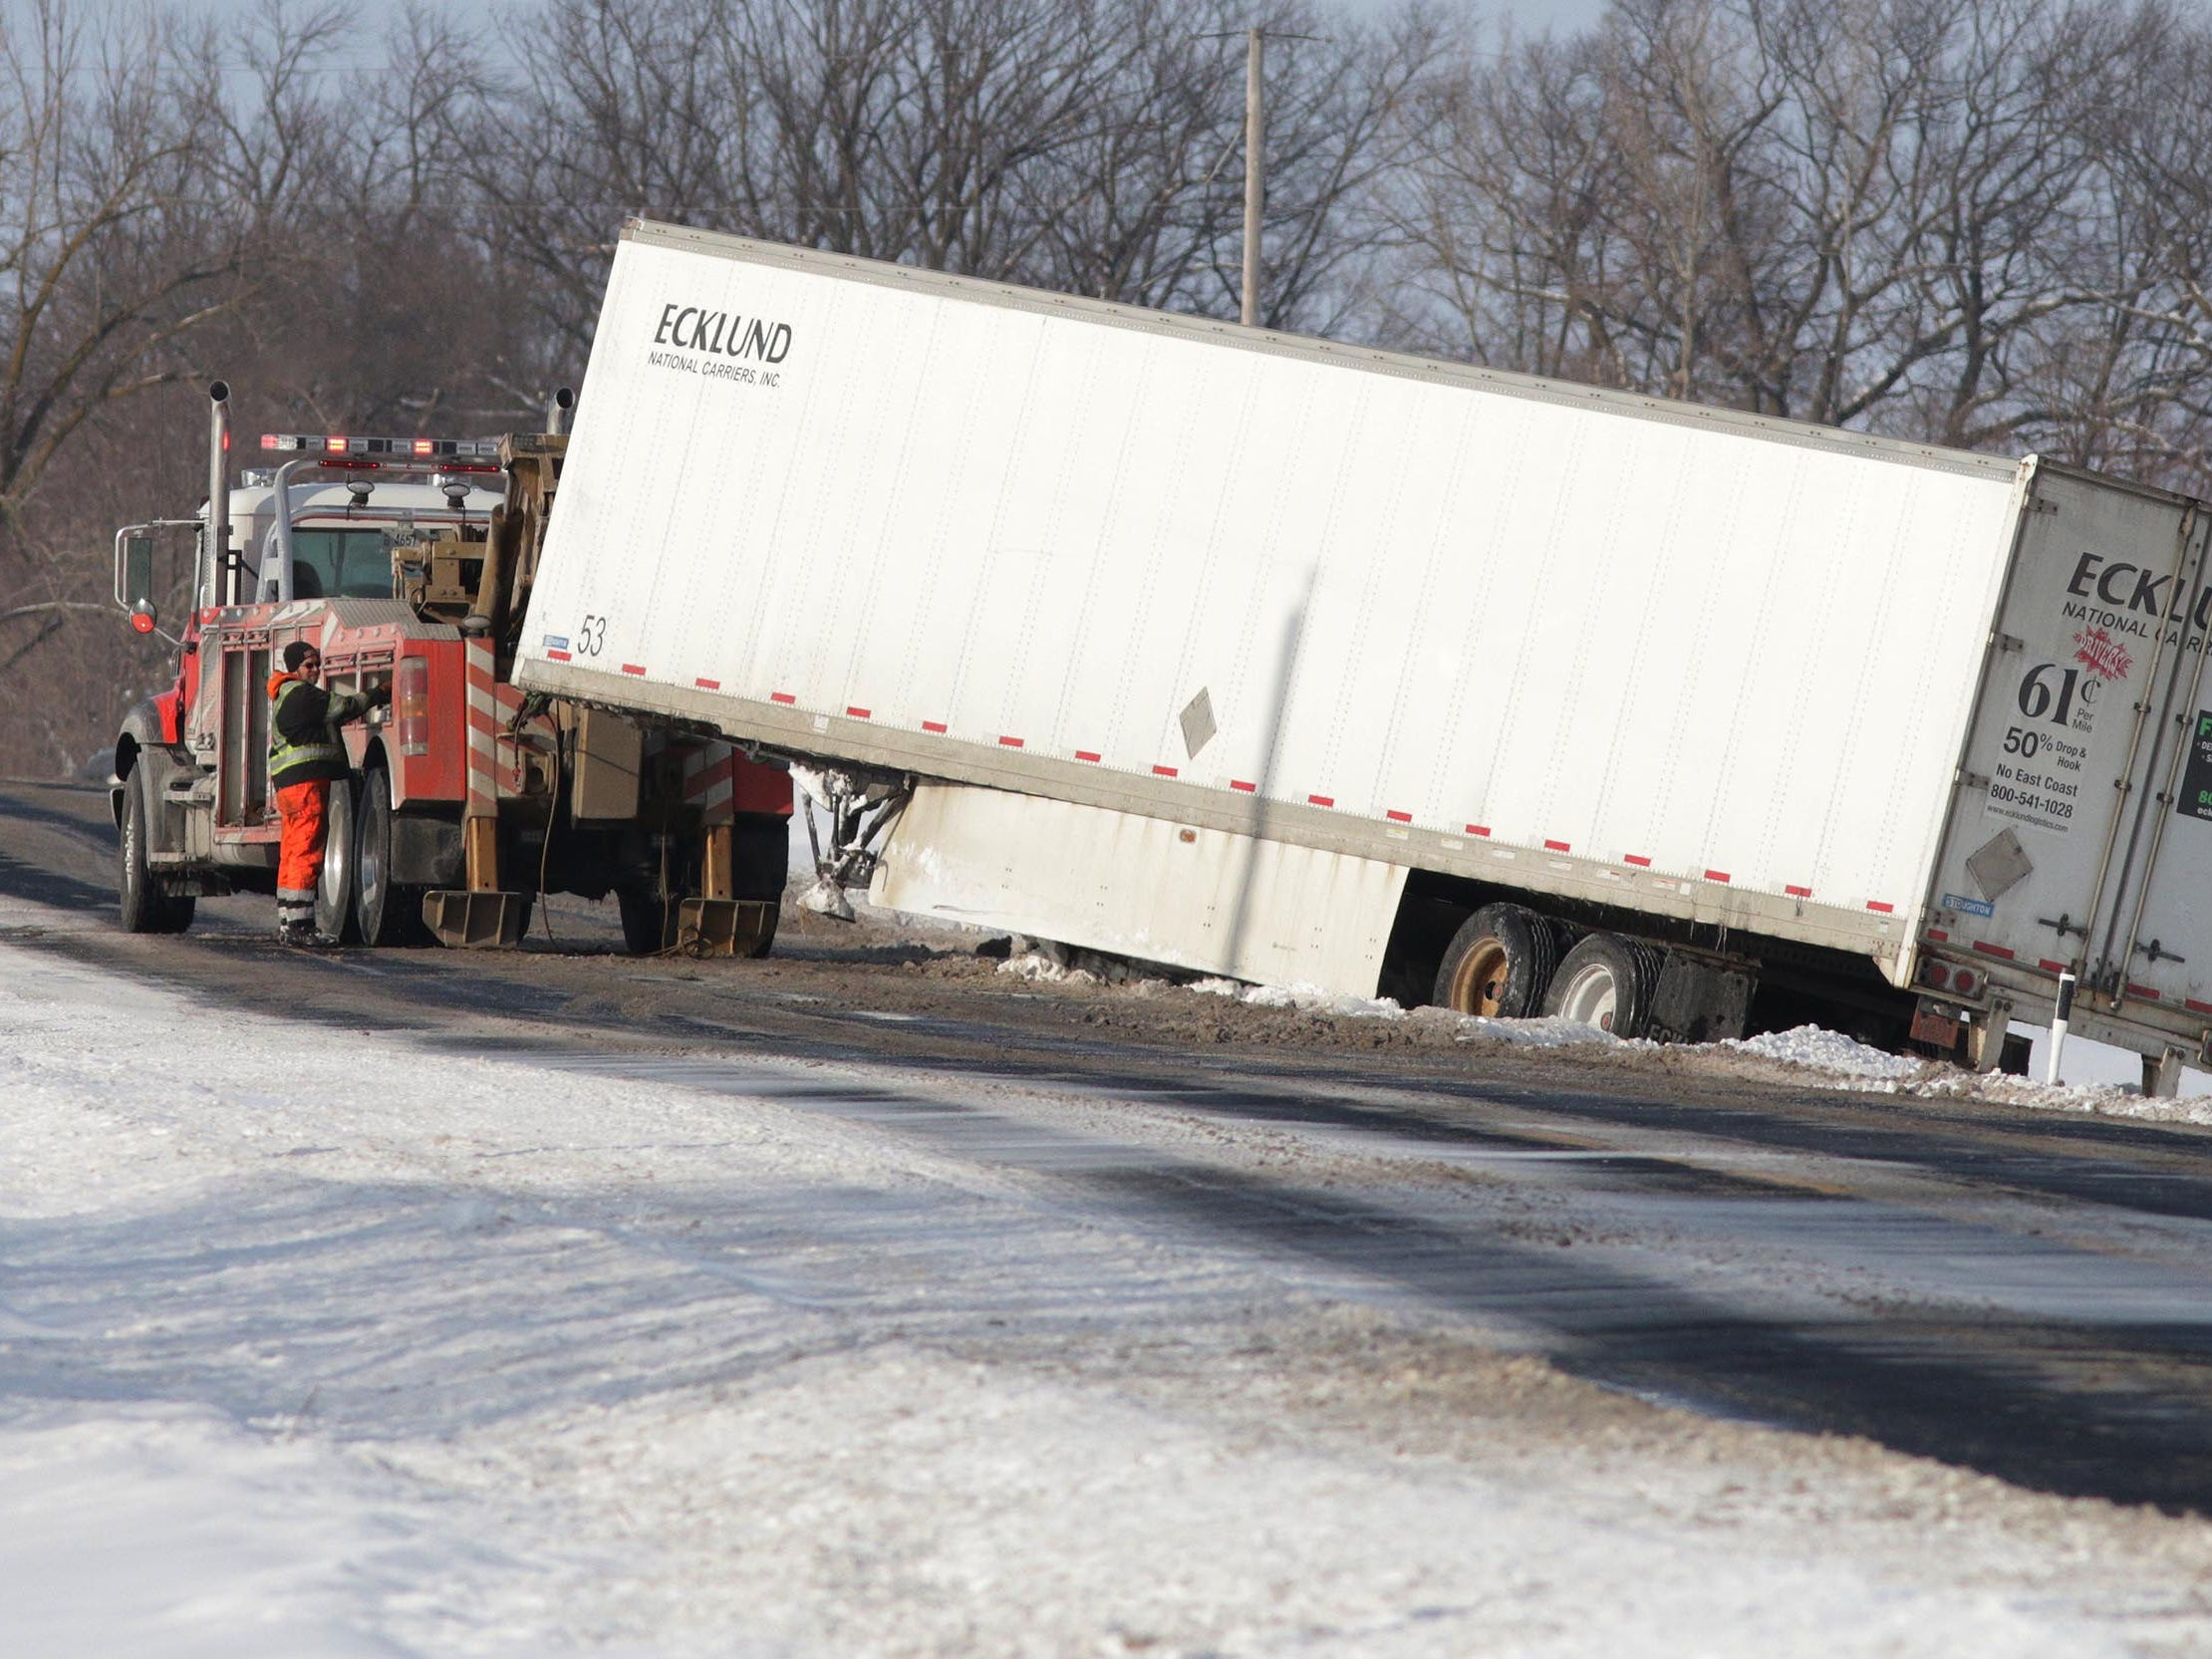 A semi trailer gets pulled out of a ditch on county Road TT near county Road C, Wednesday, February 27, 2019 near Sheboygan Falls, Wis.